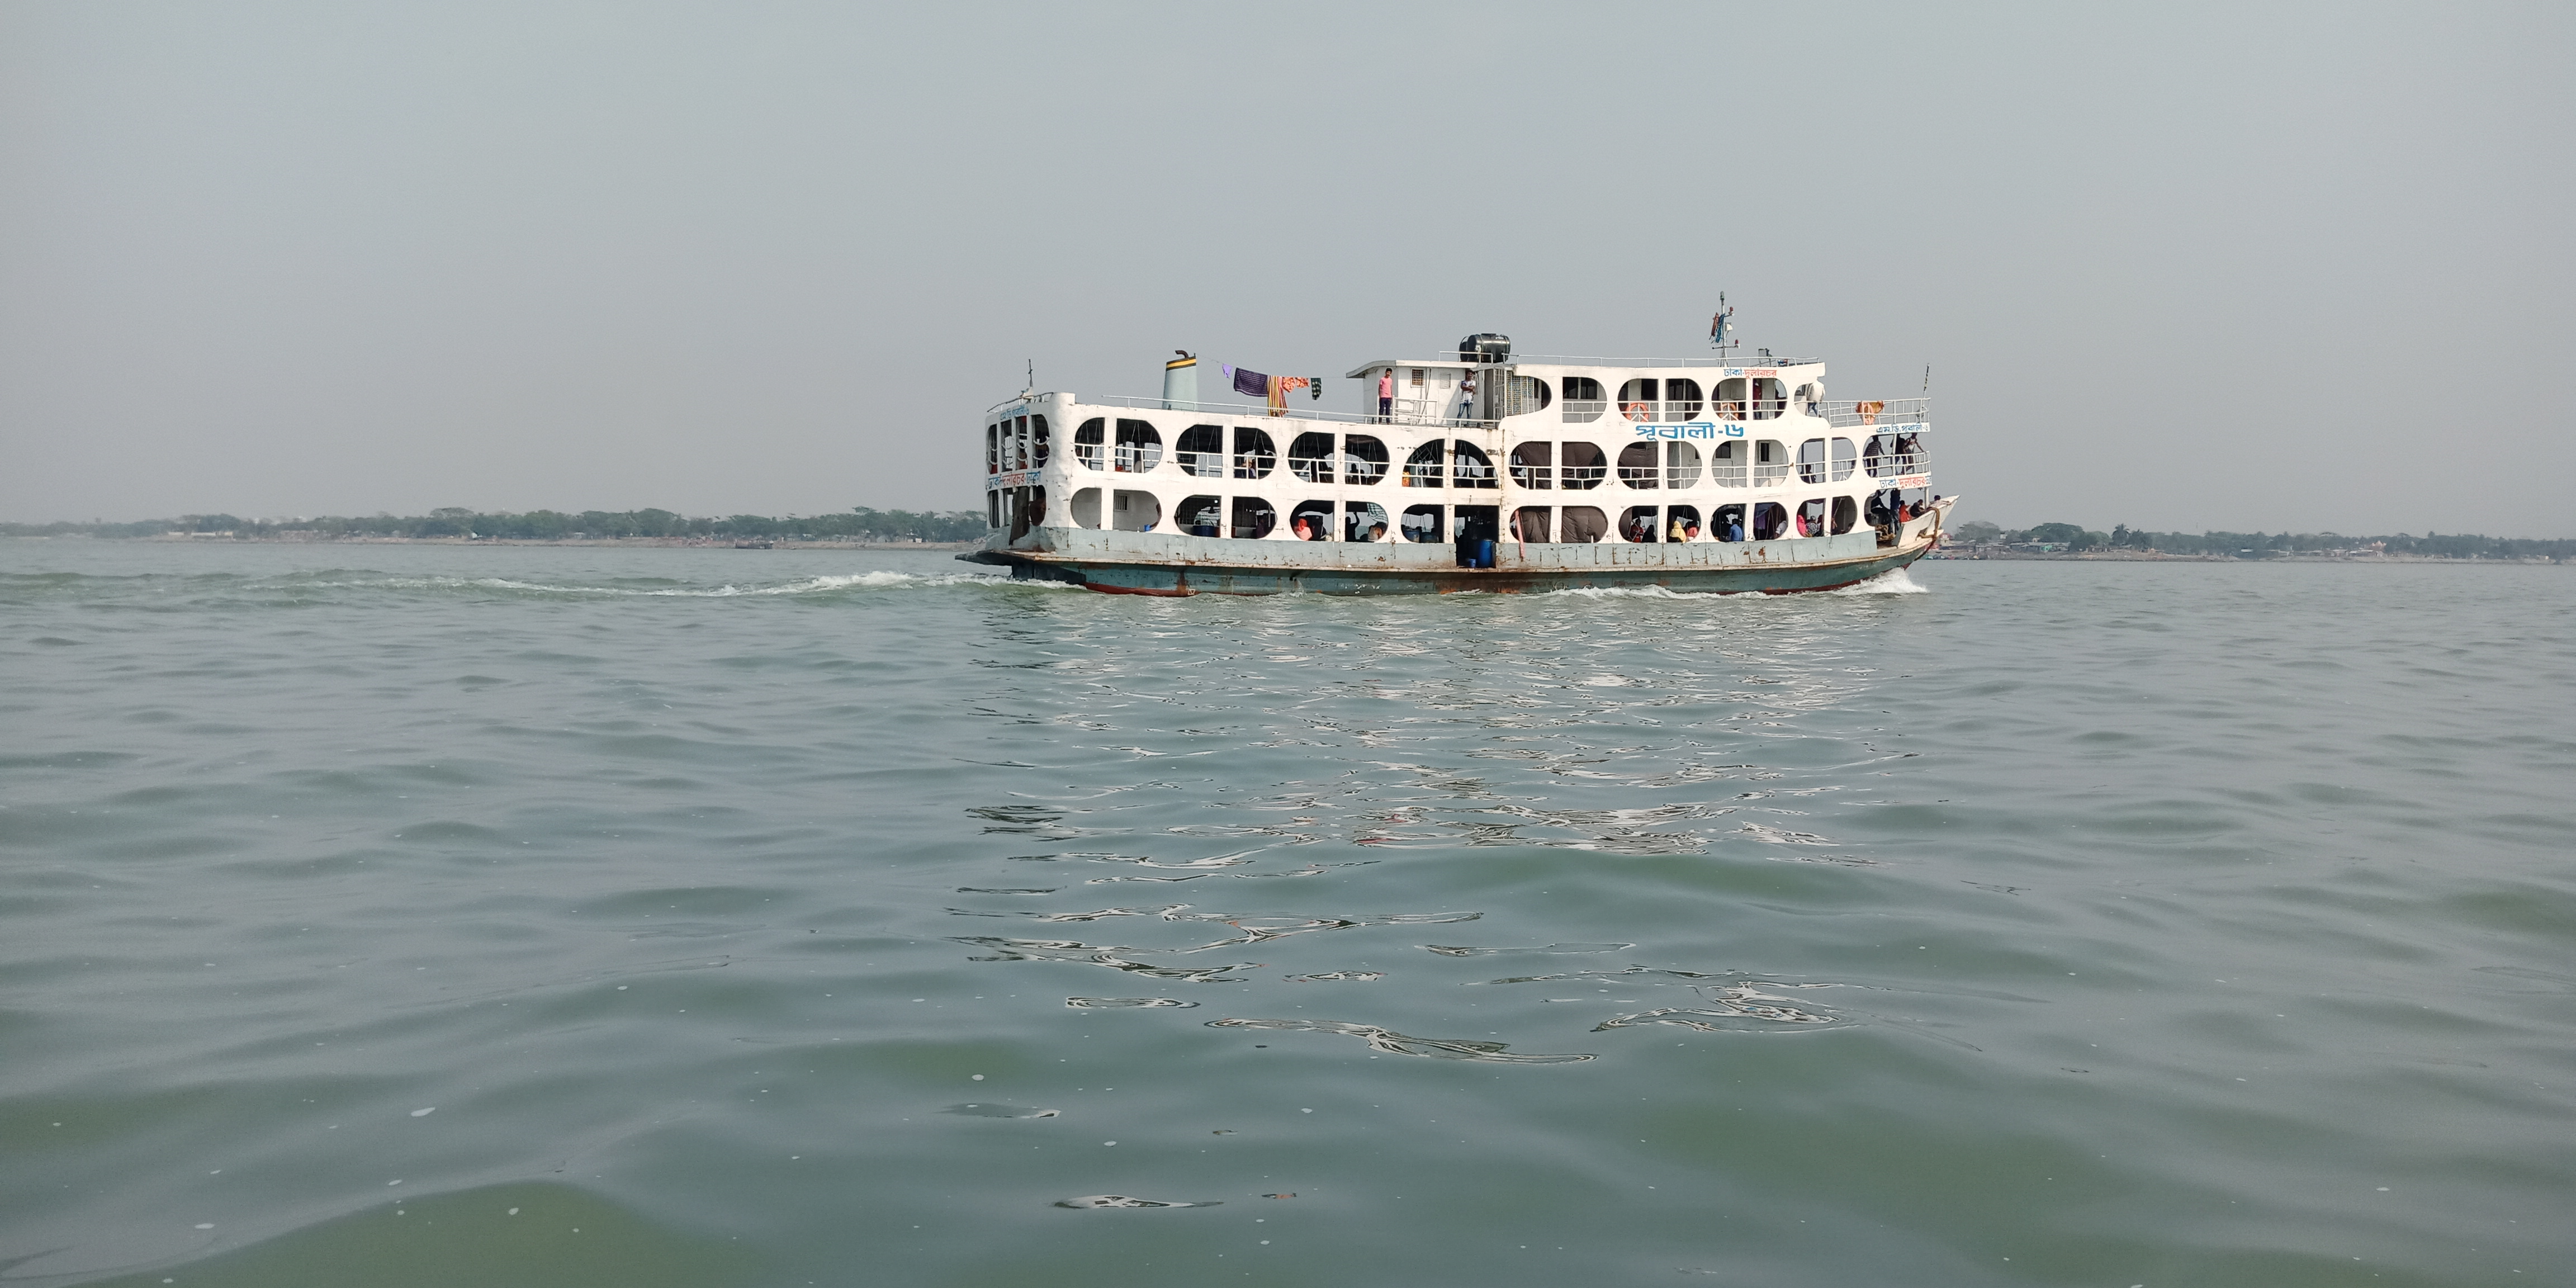 Dhaka To Chandpur - Local Guides Connect